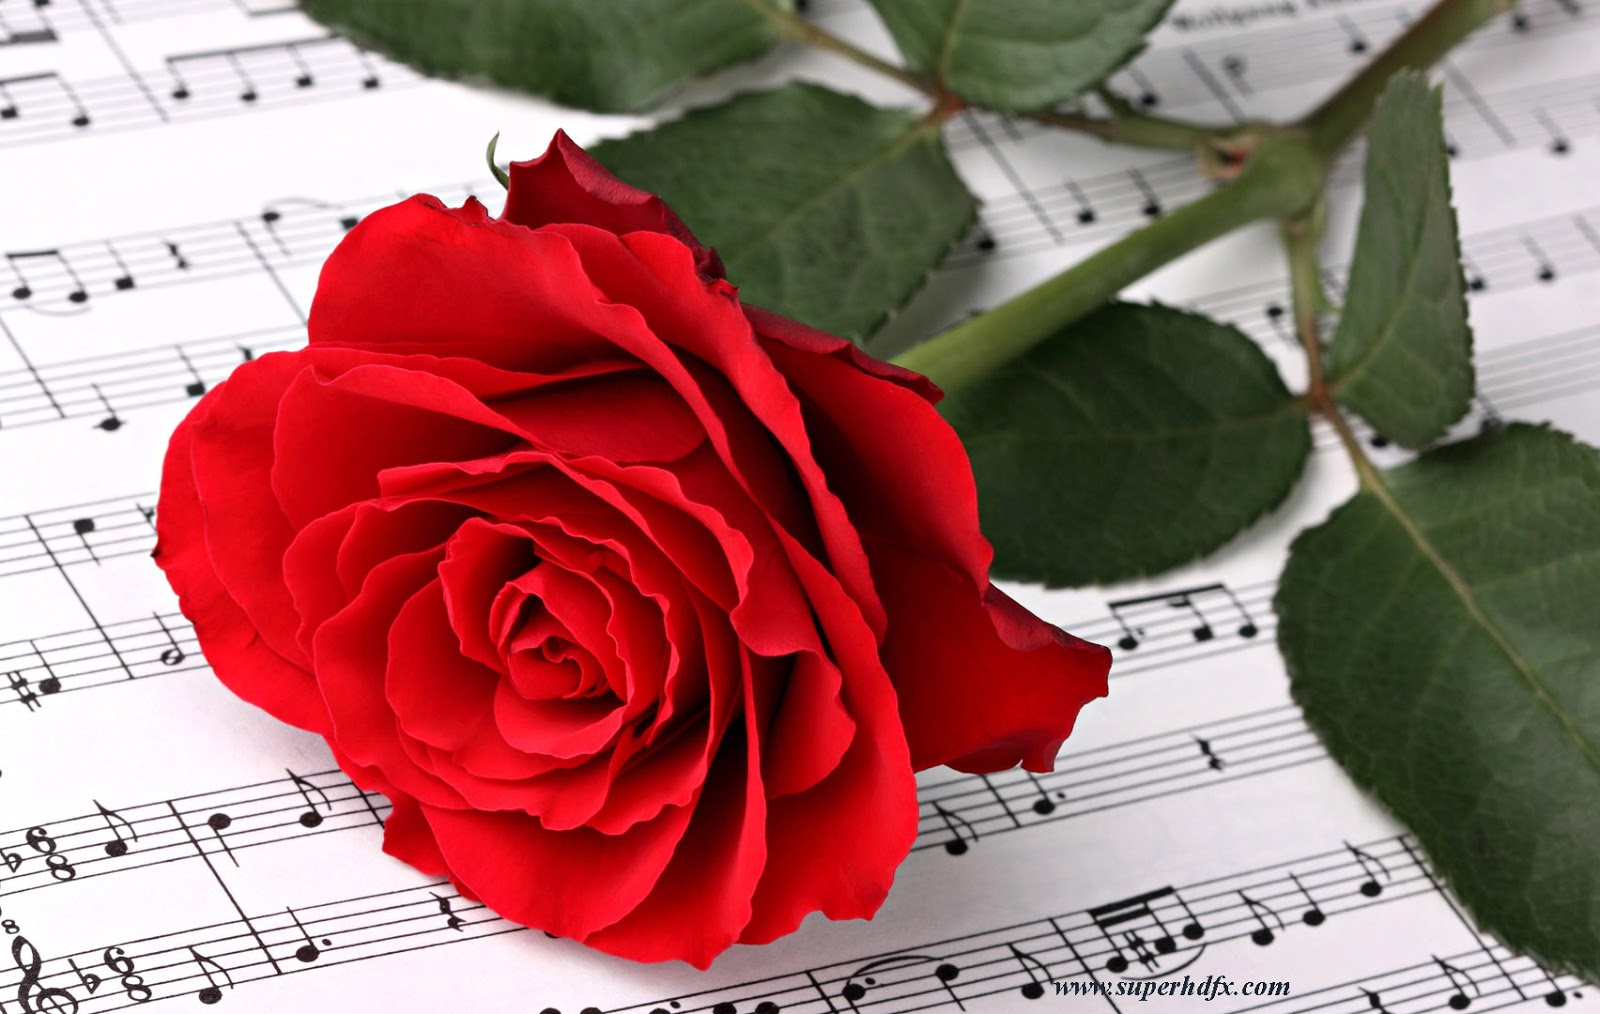 Cute Red Rose Images and Photos HD